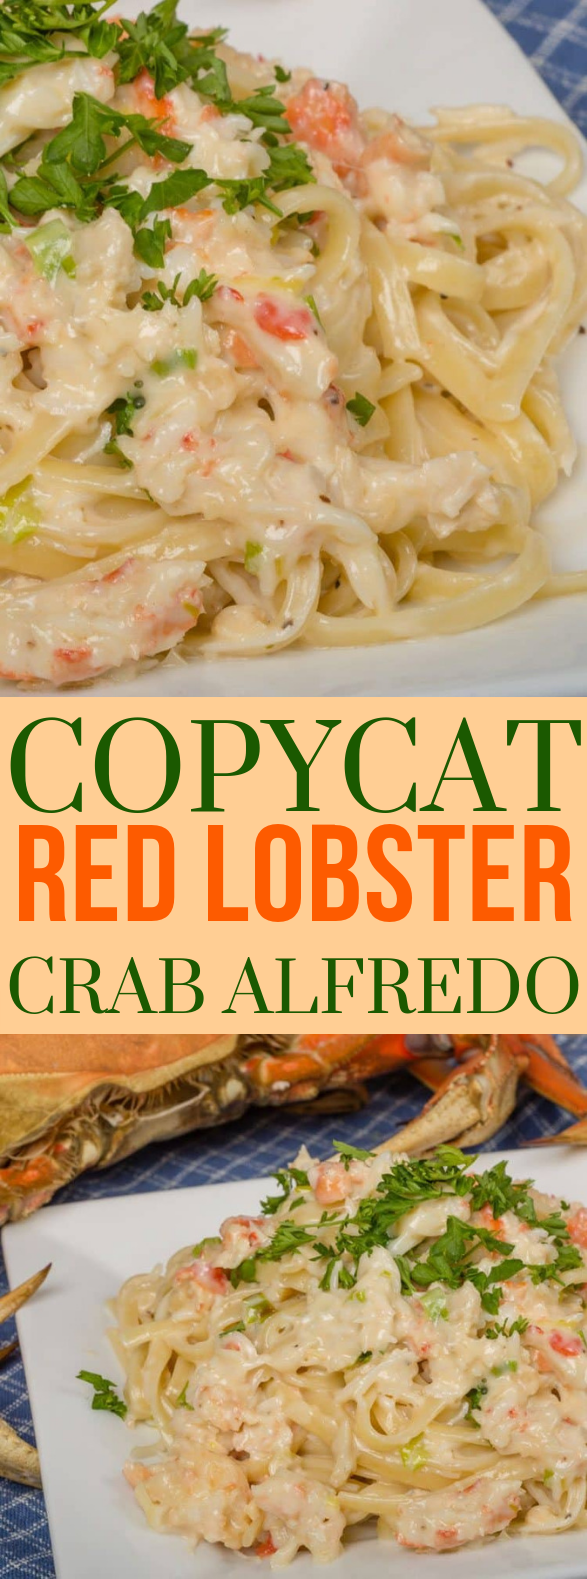 COPYCAT RED LOBSTER CRAB ALFREDO #Seafood #Dinner